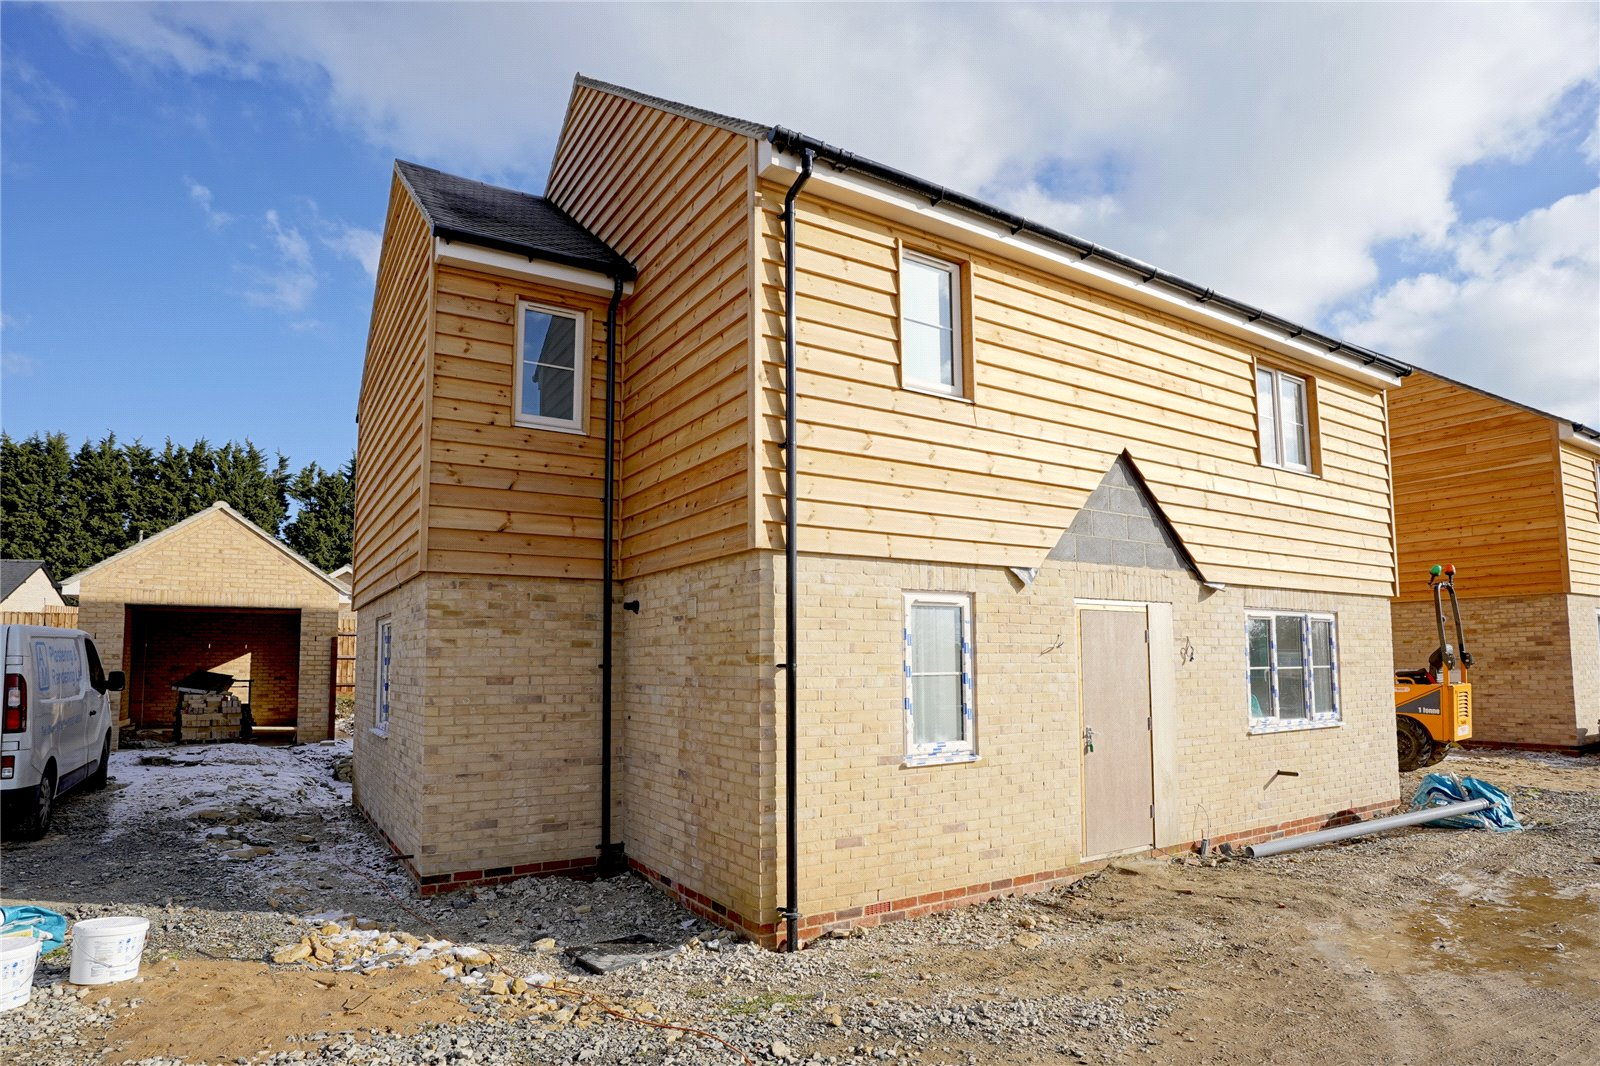 3 bed house for sale in Great Stukeley, PE28 4AW  - Property Image 1